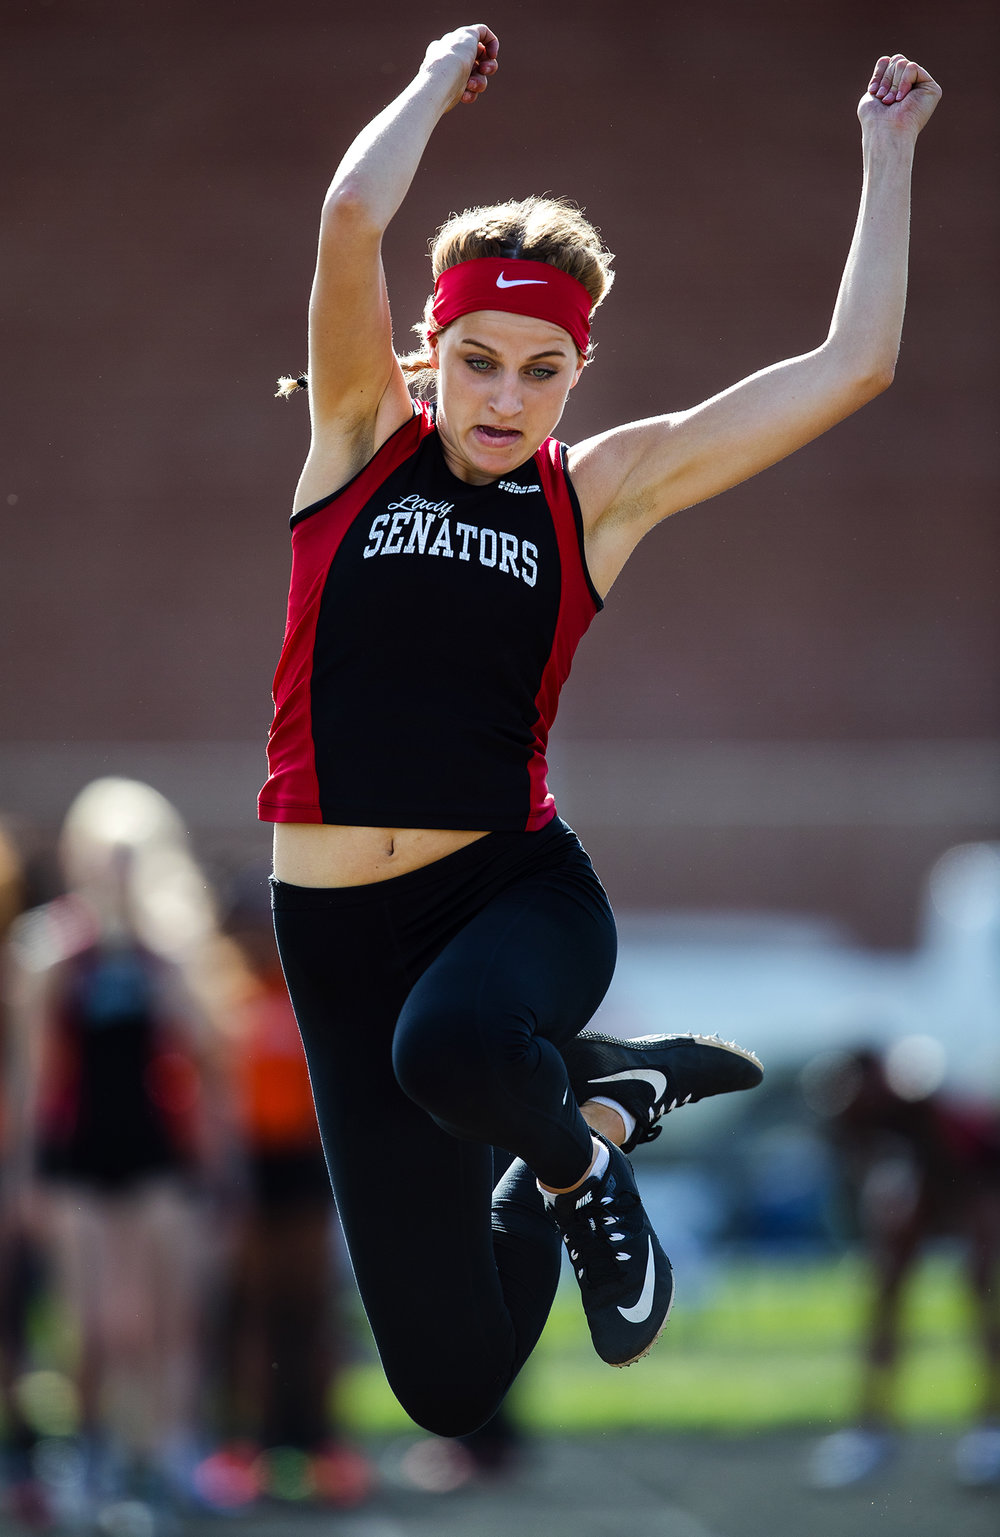 Springfield's Jennifer Parsons placed second in the long jump during the Girls City Meet at Memorial Stadium Tuesday, April 25, 2017.  [Ted Schurter/The State Journal-Register]